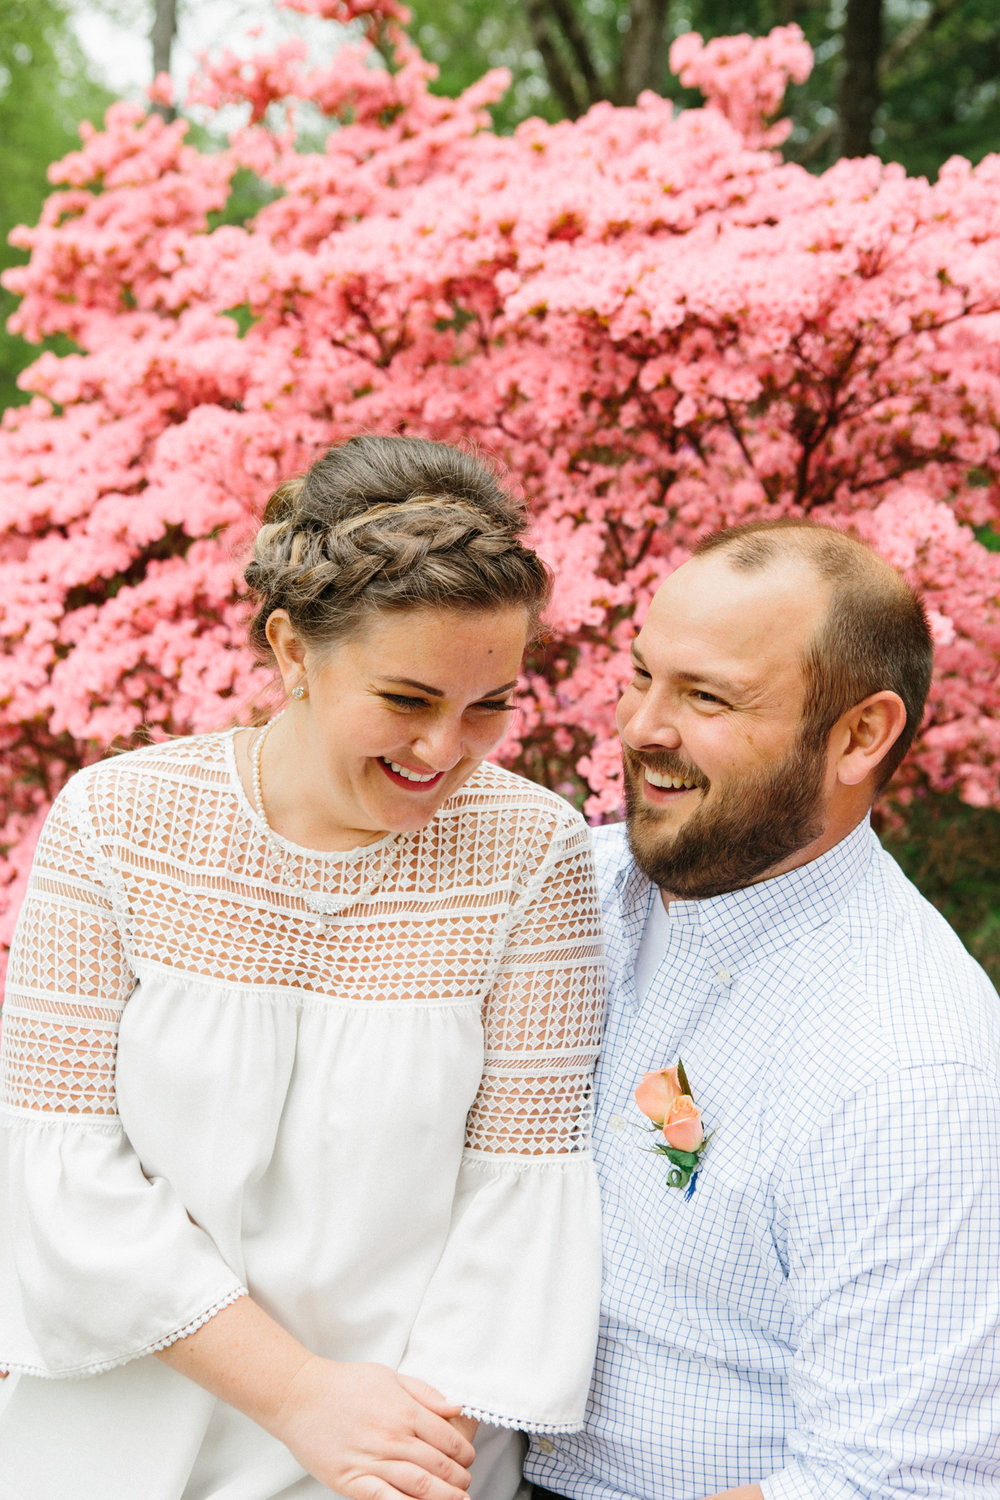 Photography from Natalie and Kyle's wedding in Bloomington, Indiana.